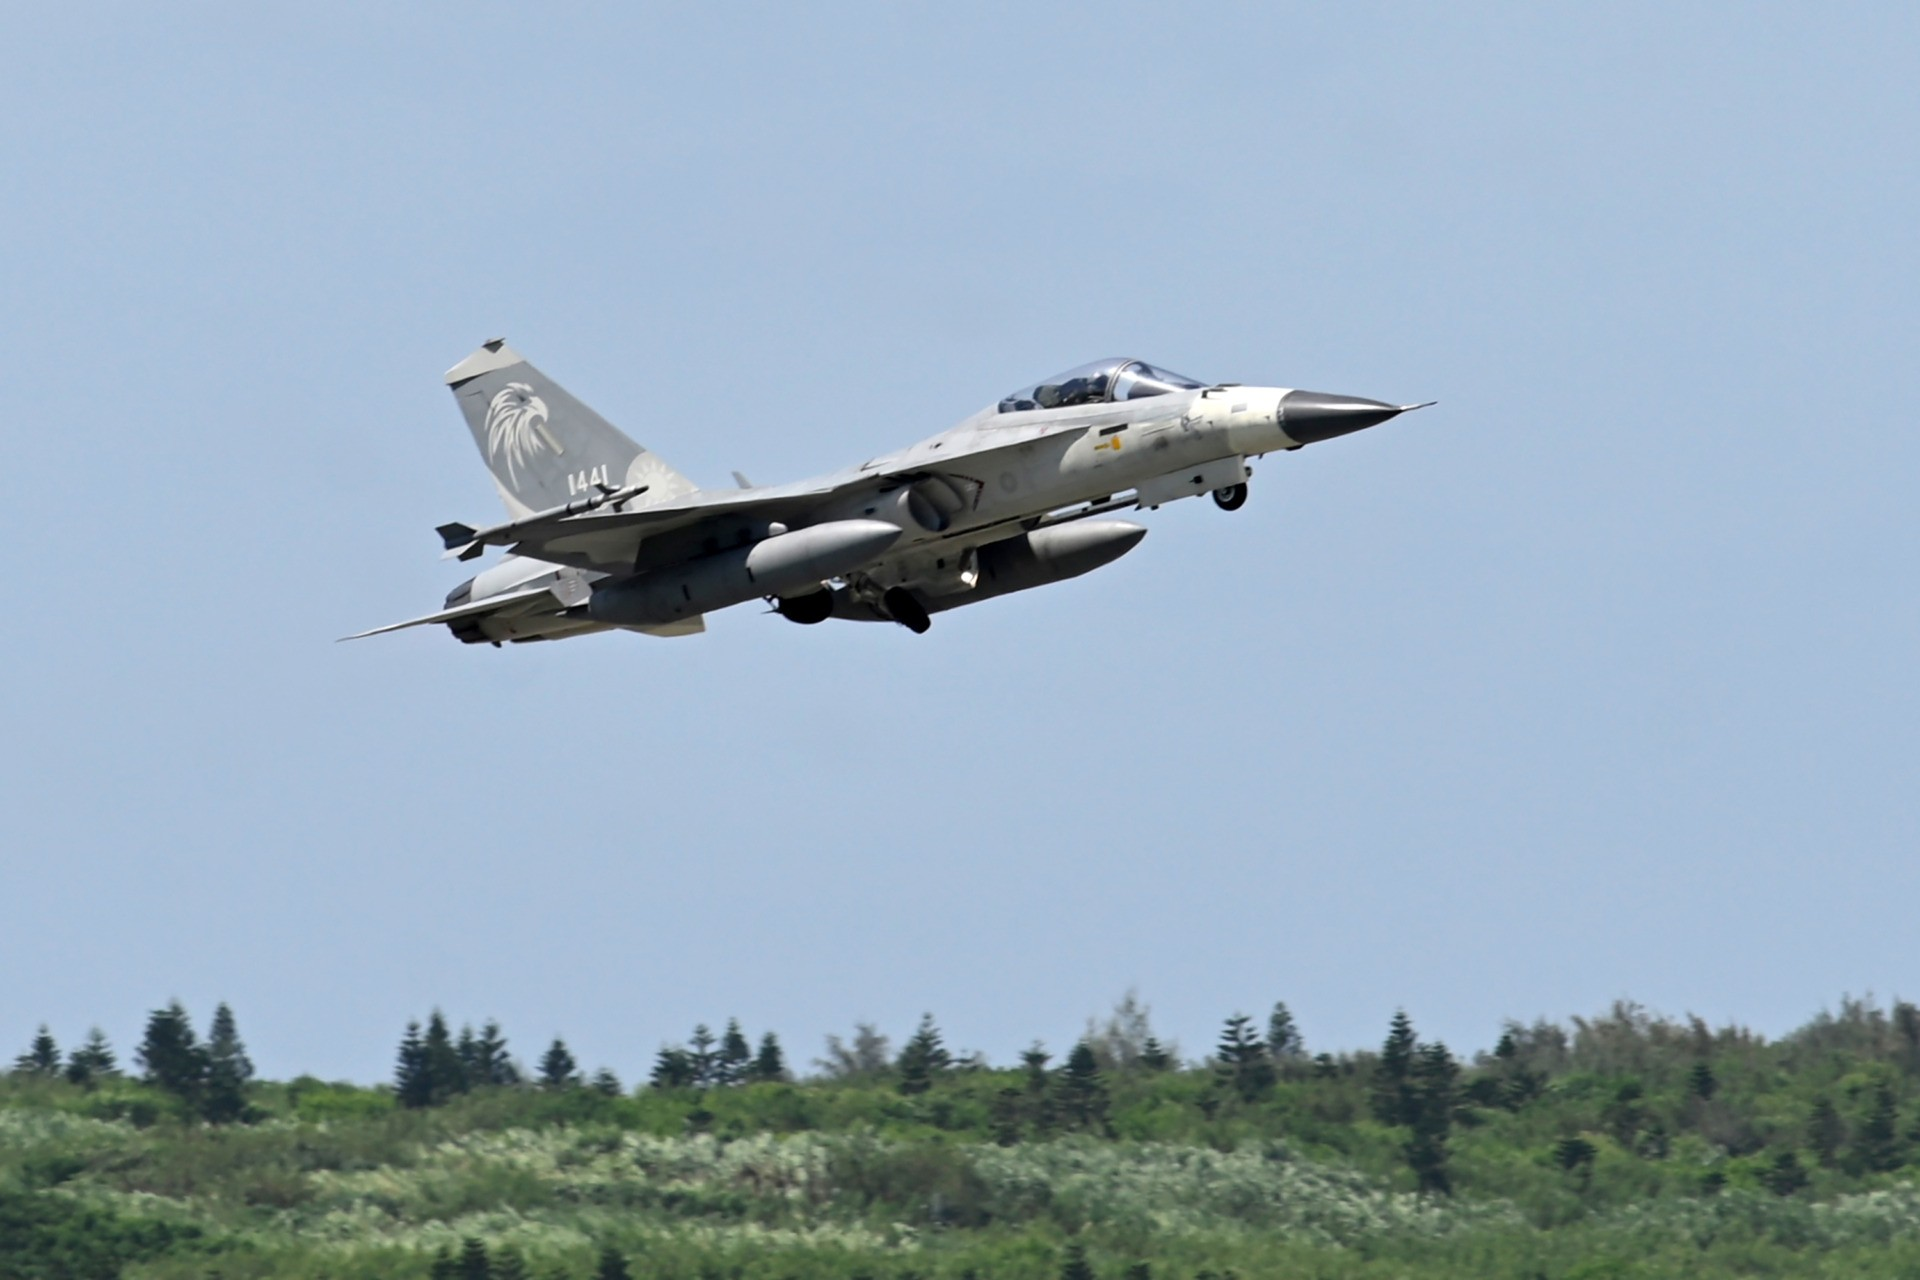 A domestically-produced F-CK-1 indigenous defence fighter jet (IDF) takes off during a visit by the island's president and the media from Penghu Air Force Base on Magong island in the Penghu islands on September 22, 2020. (Photo by Sam Yeh / AFP) (Photo by SAM YEH/AFP via Getty Images)